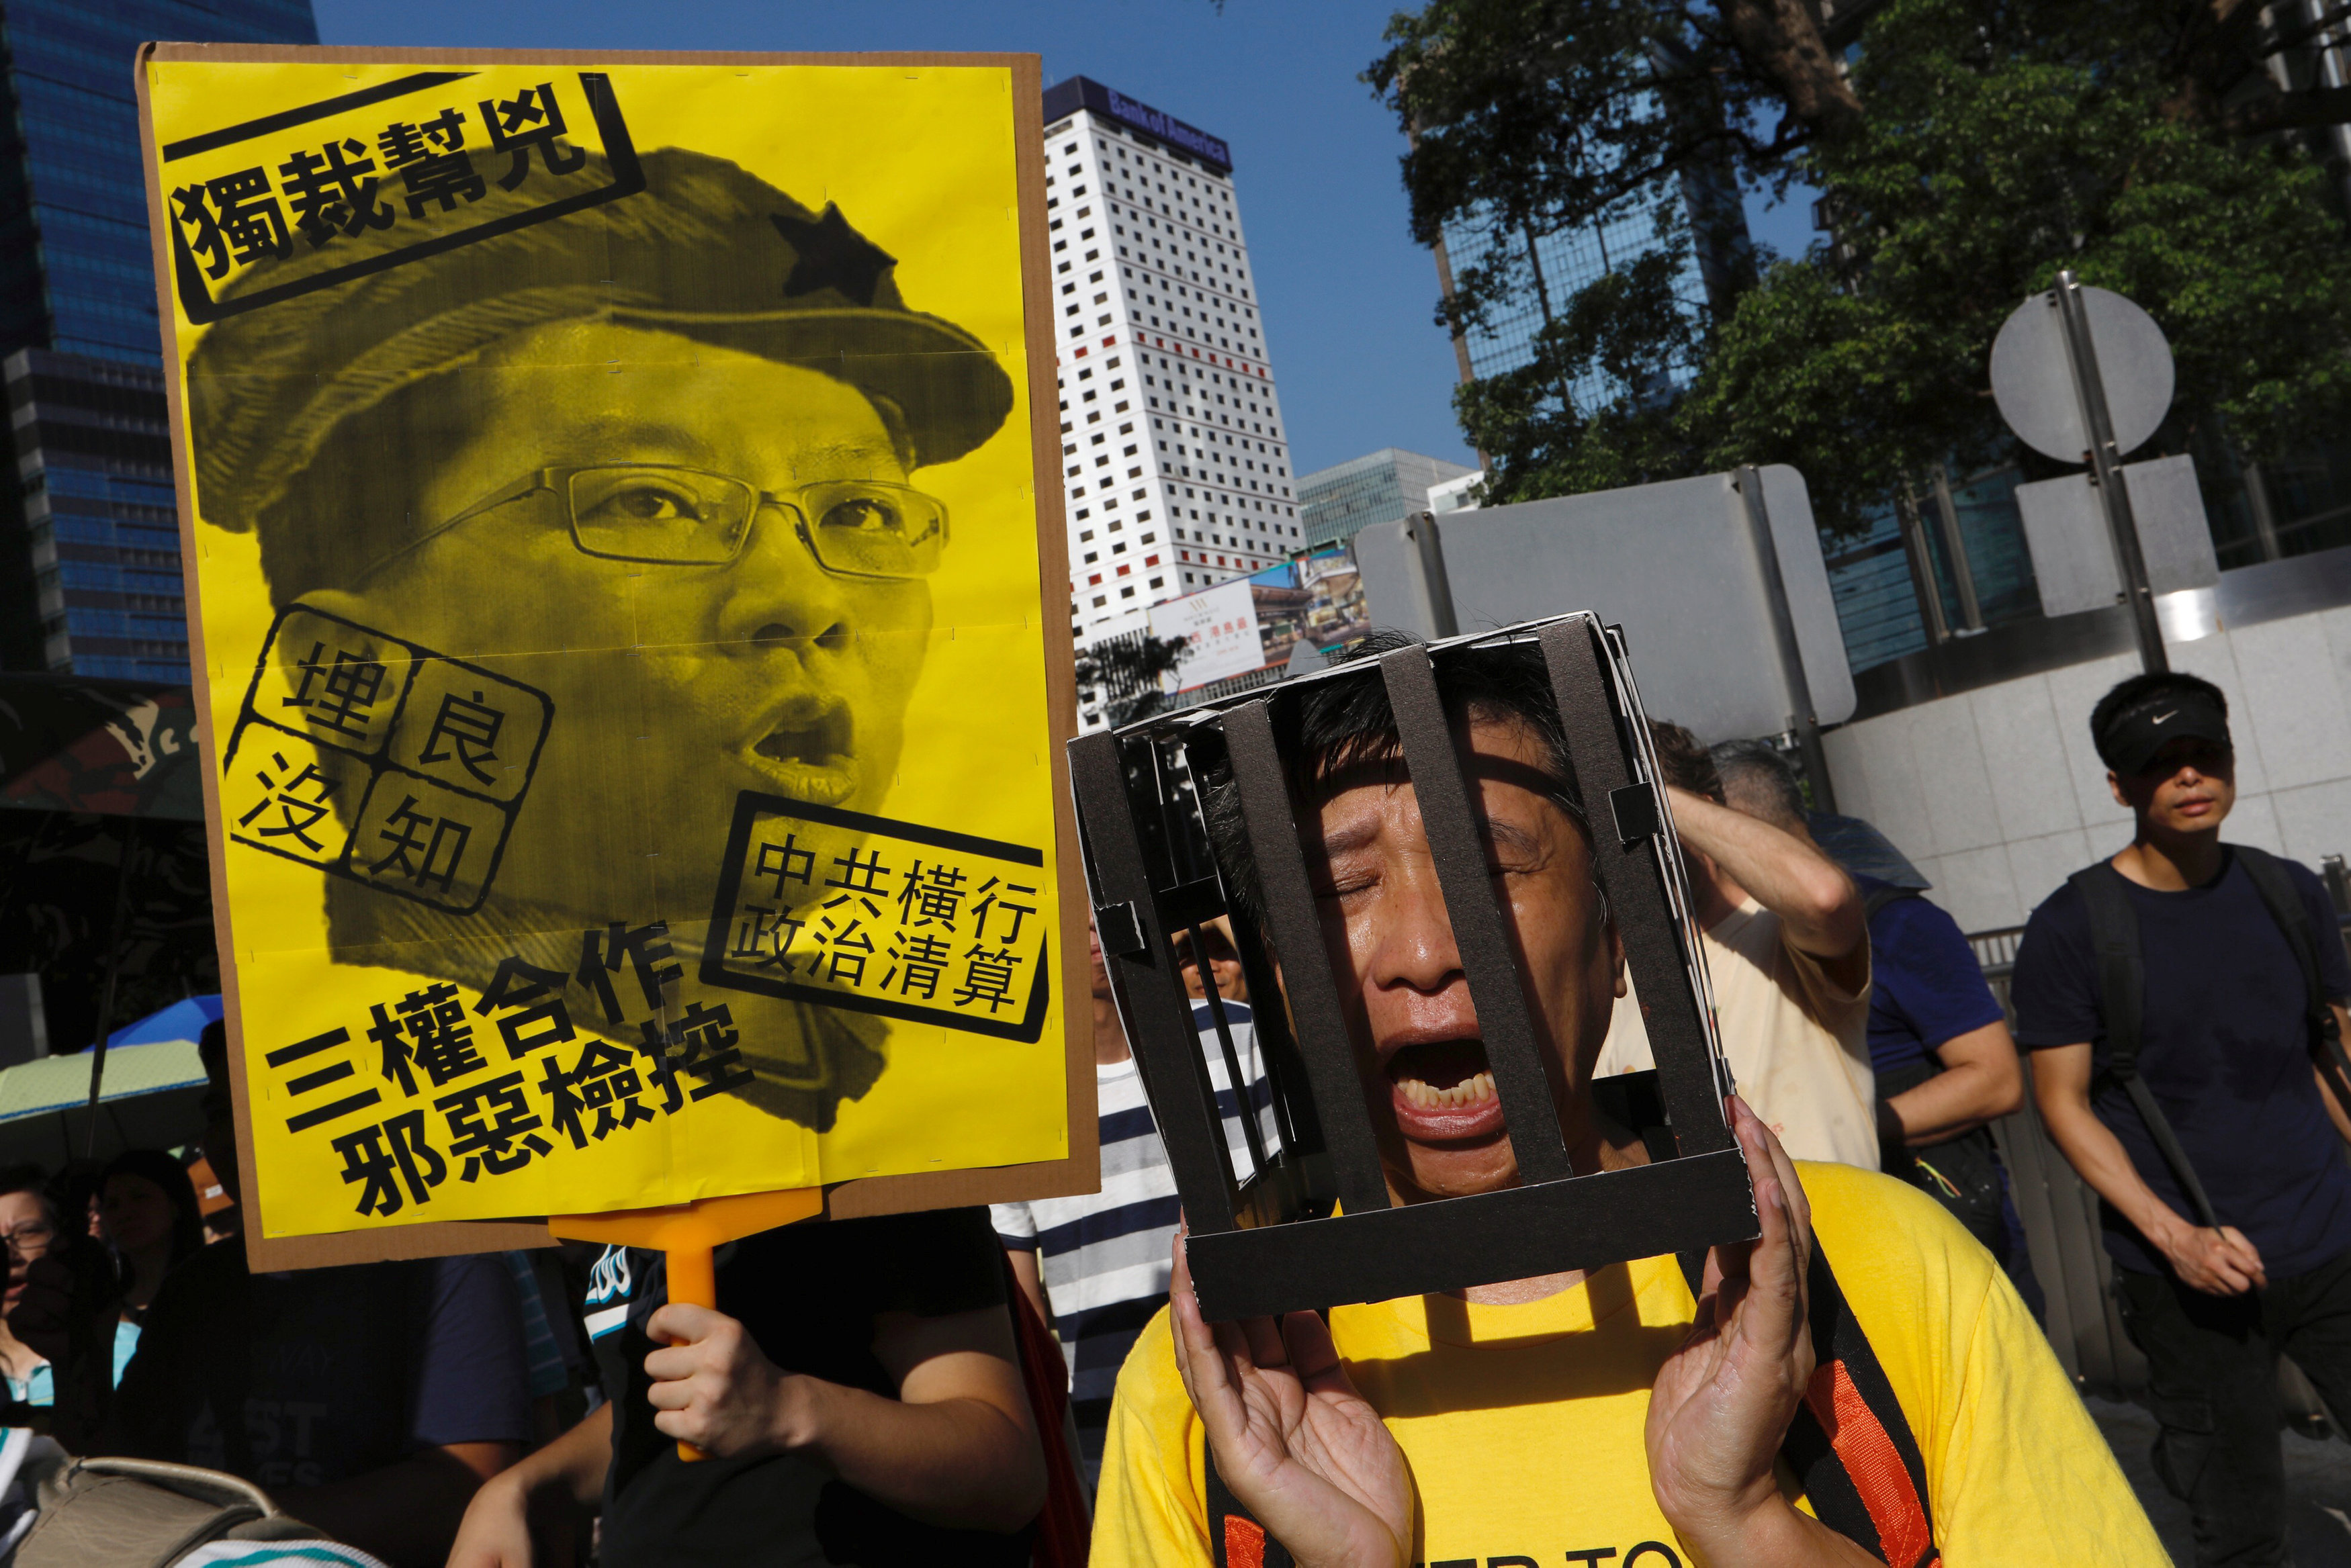 Thousands protest in Hong Kong against jailing of democracy activists